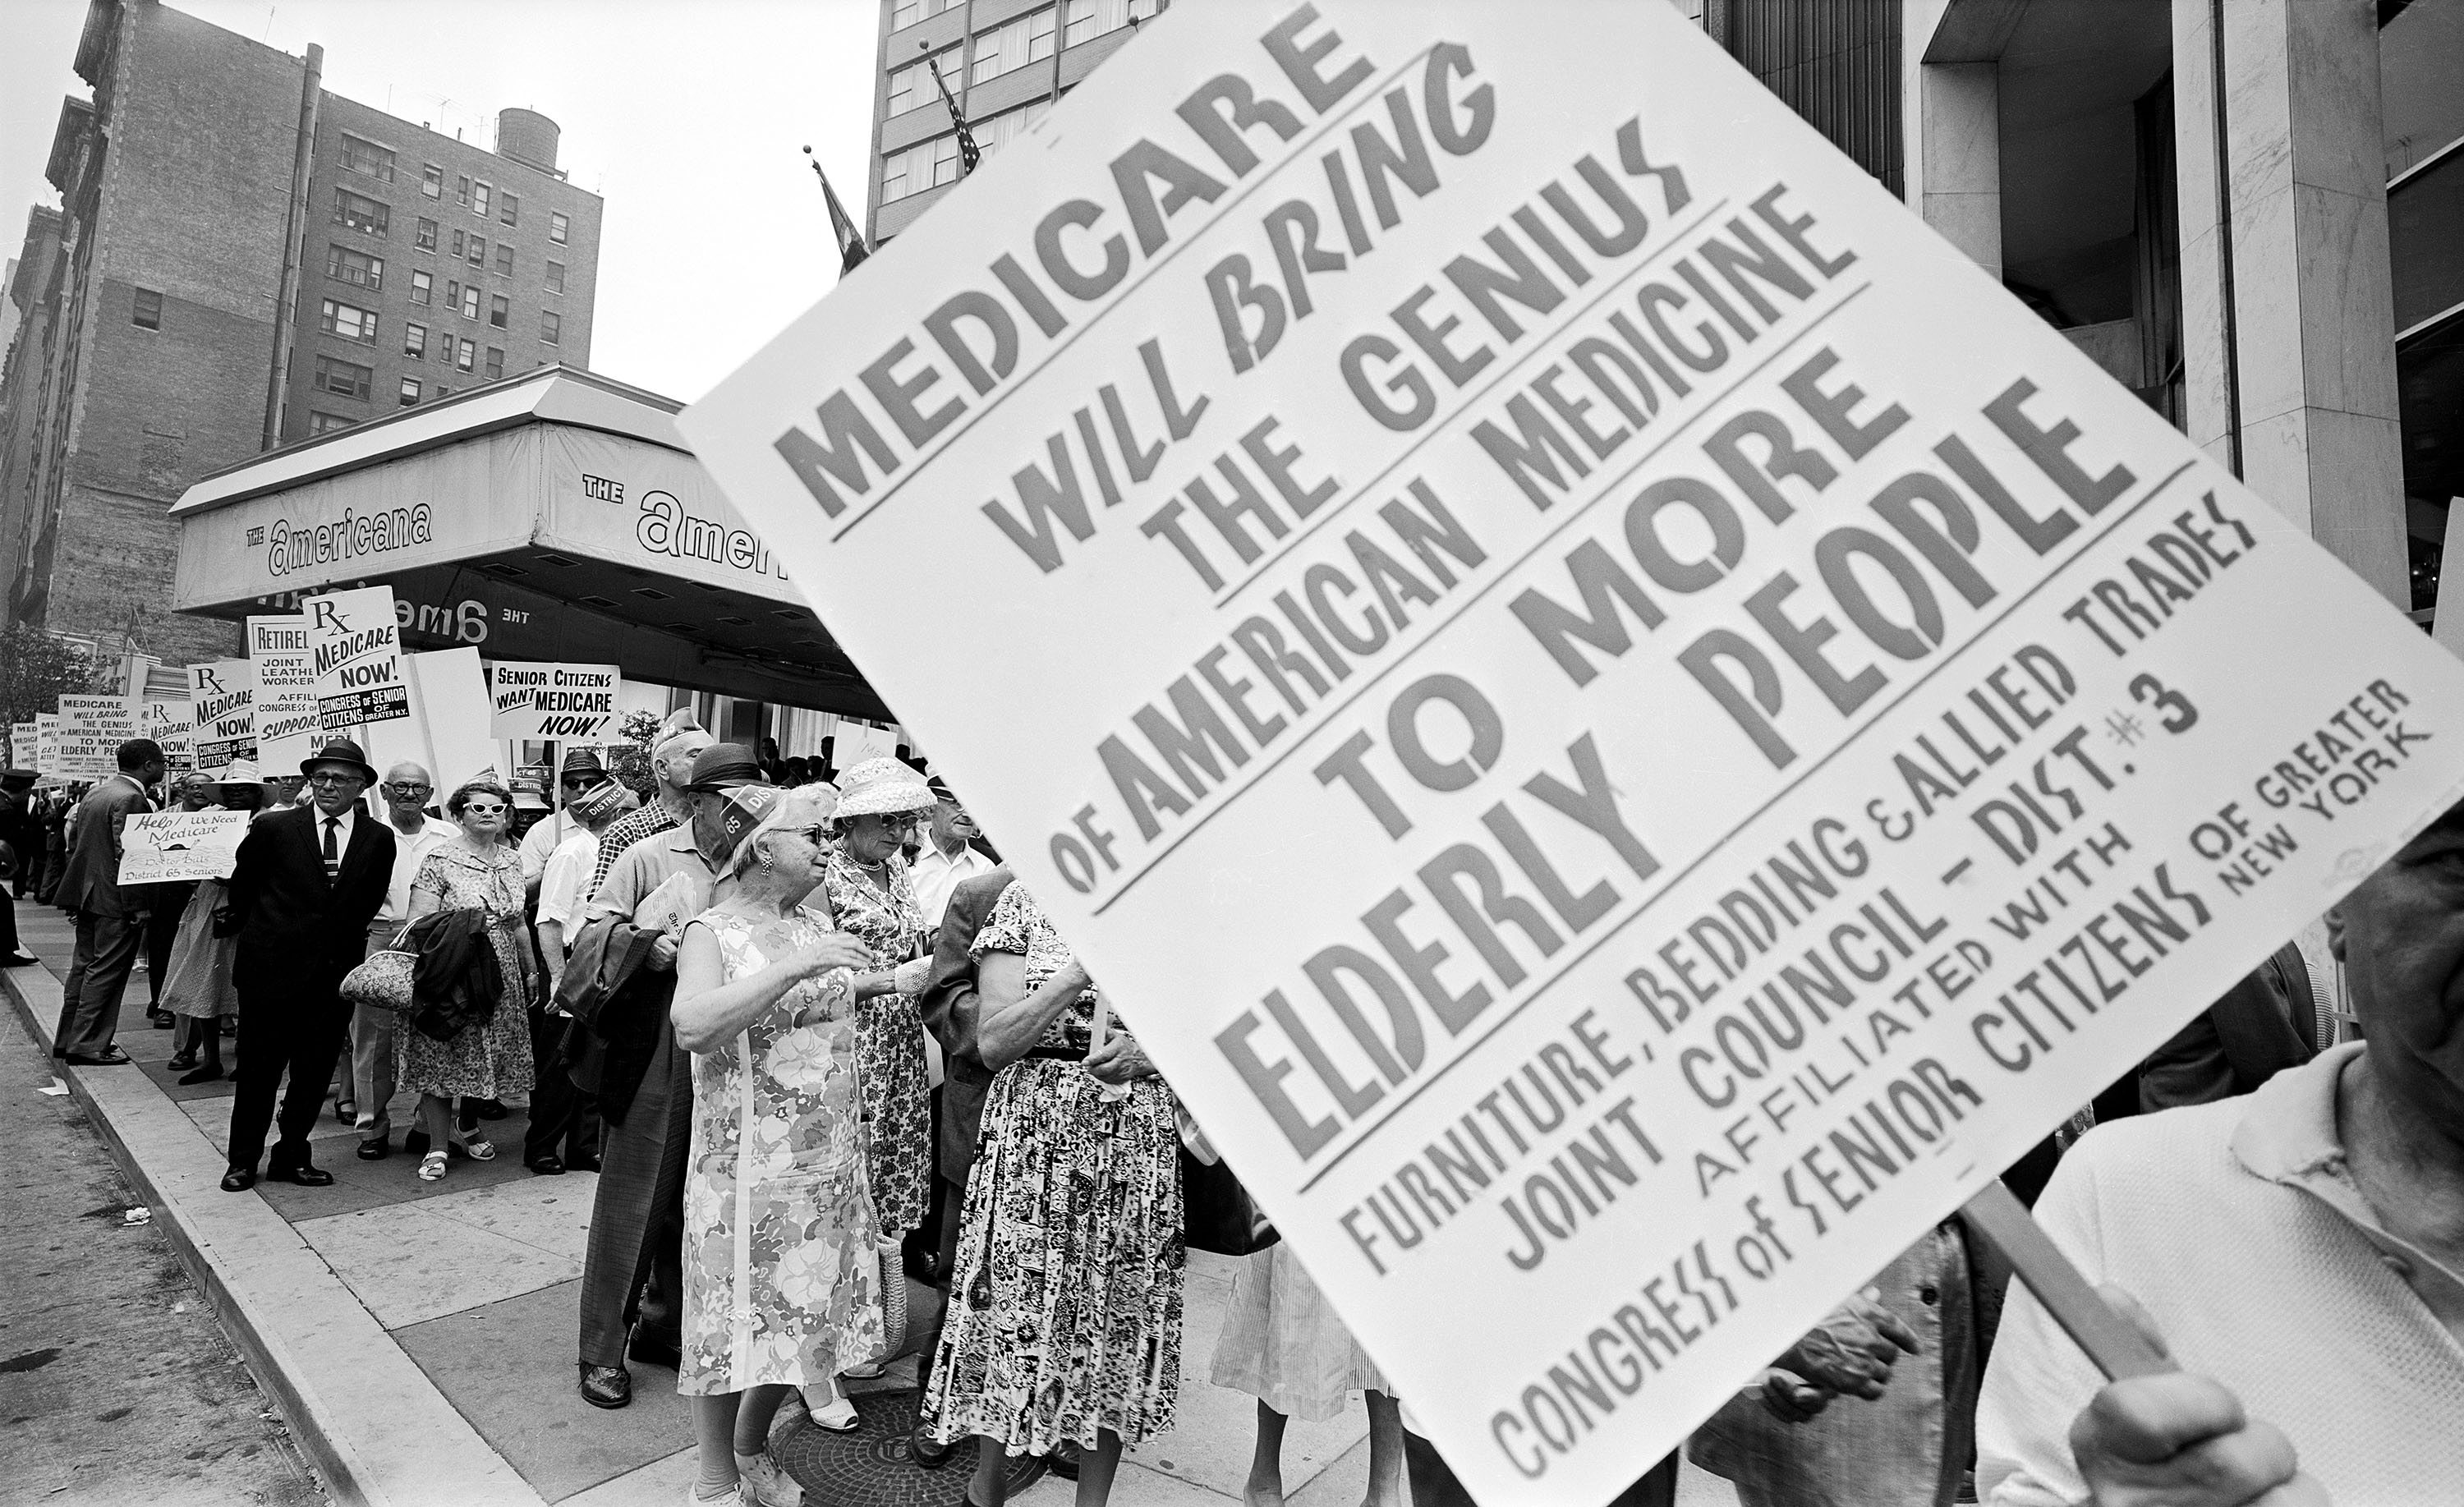 Retired Senior Citizens Carrying Pro-Medicare Signs